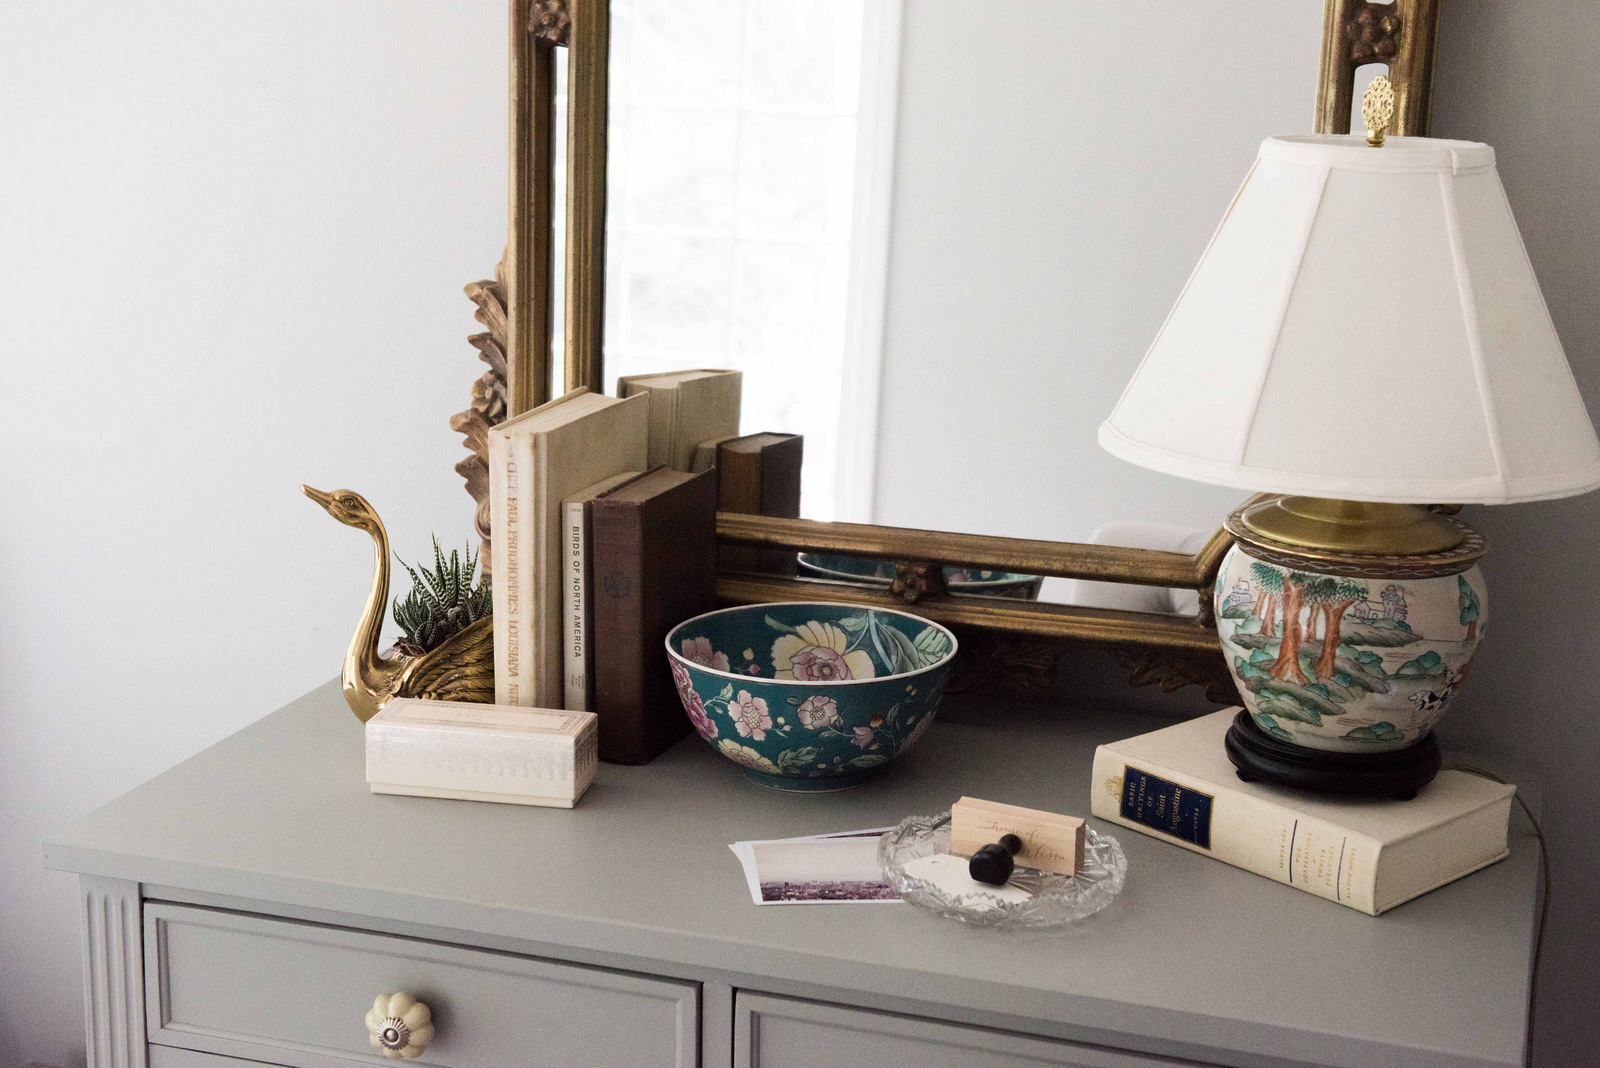 Asian Bowl + Mirror + Painted desk/side table